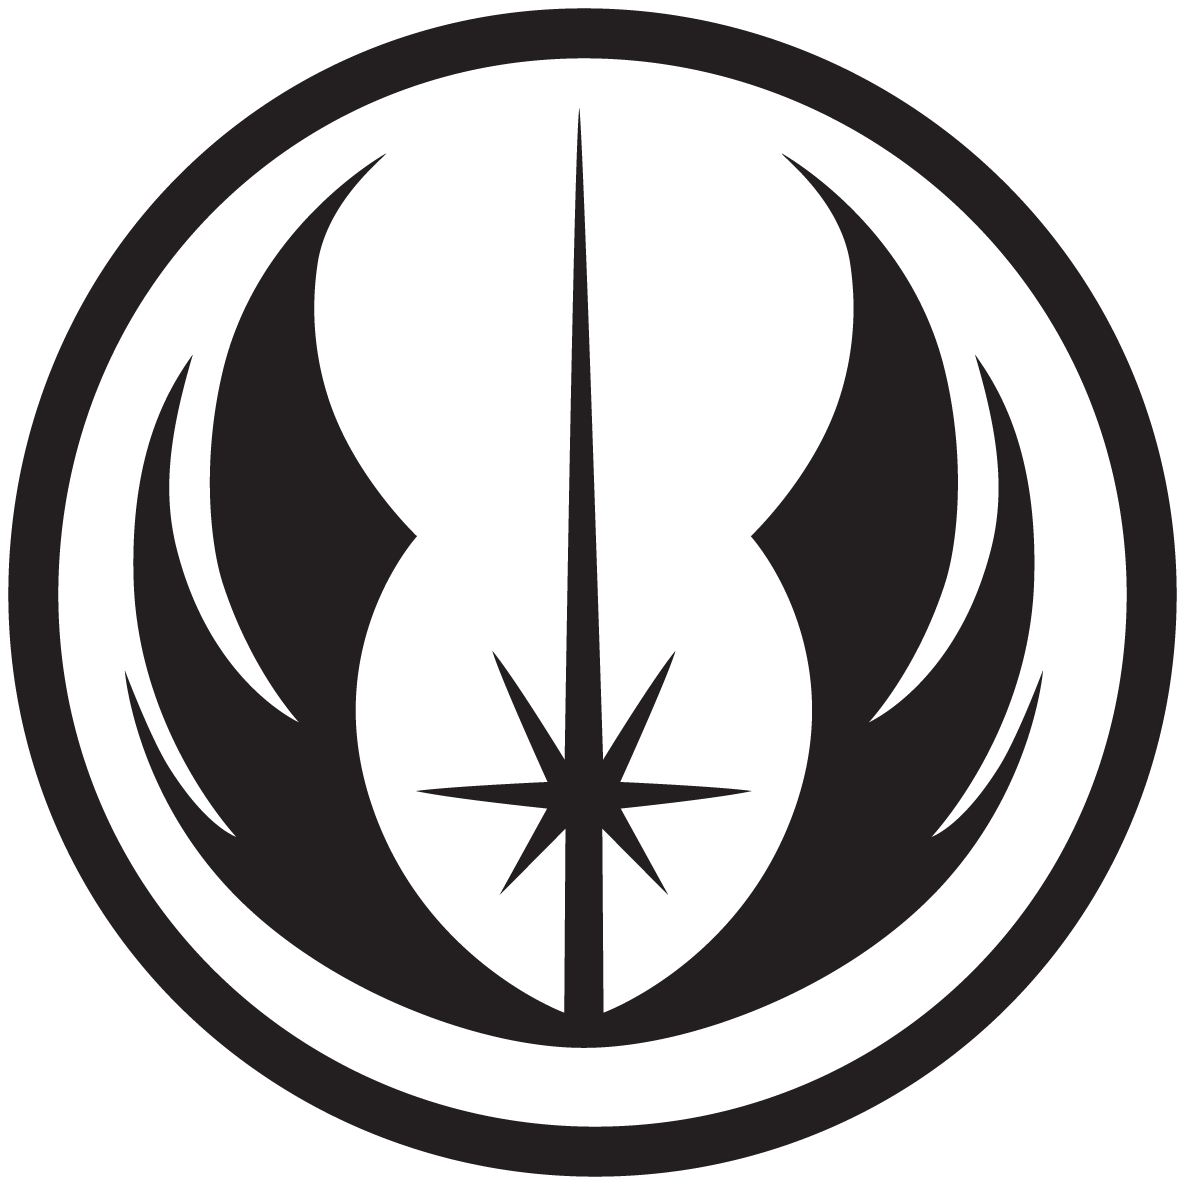 Star wars logos wallpapers by swmand4 on deviantart jedi order symbol buycottarizona Choice Image